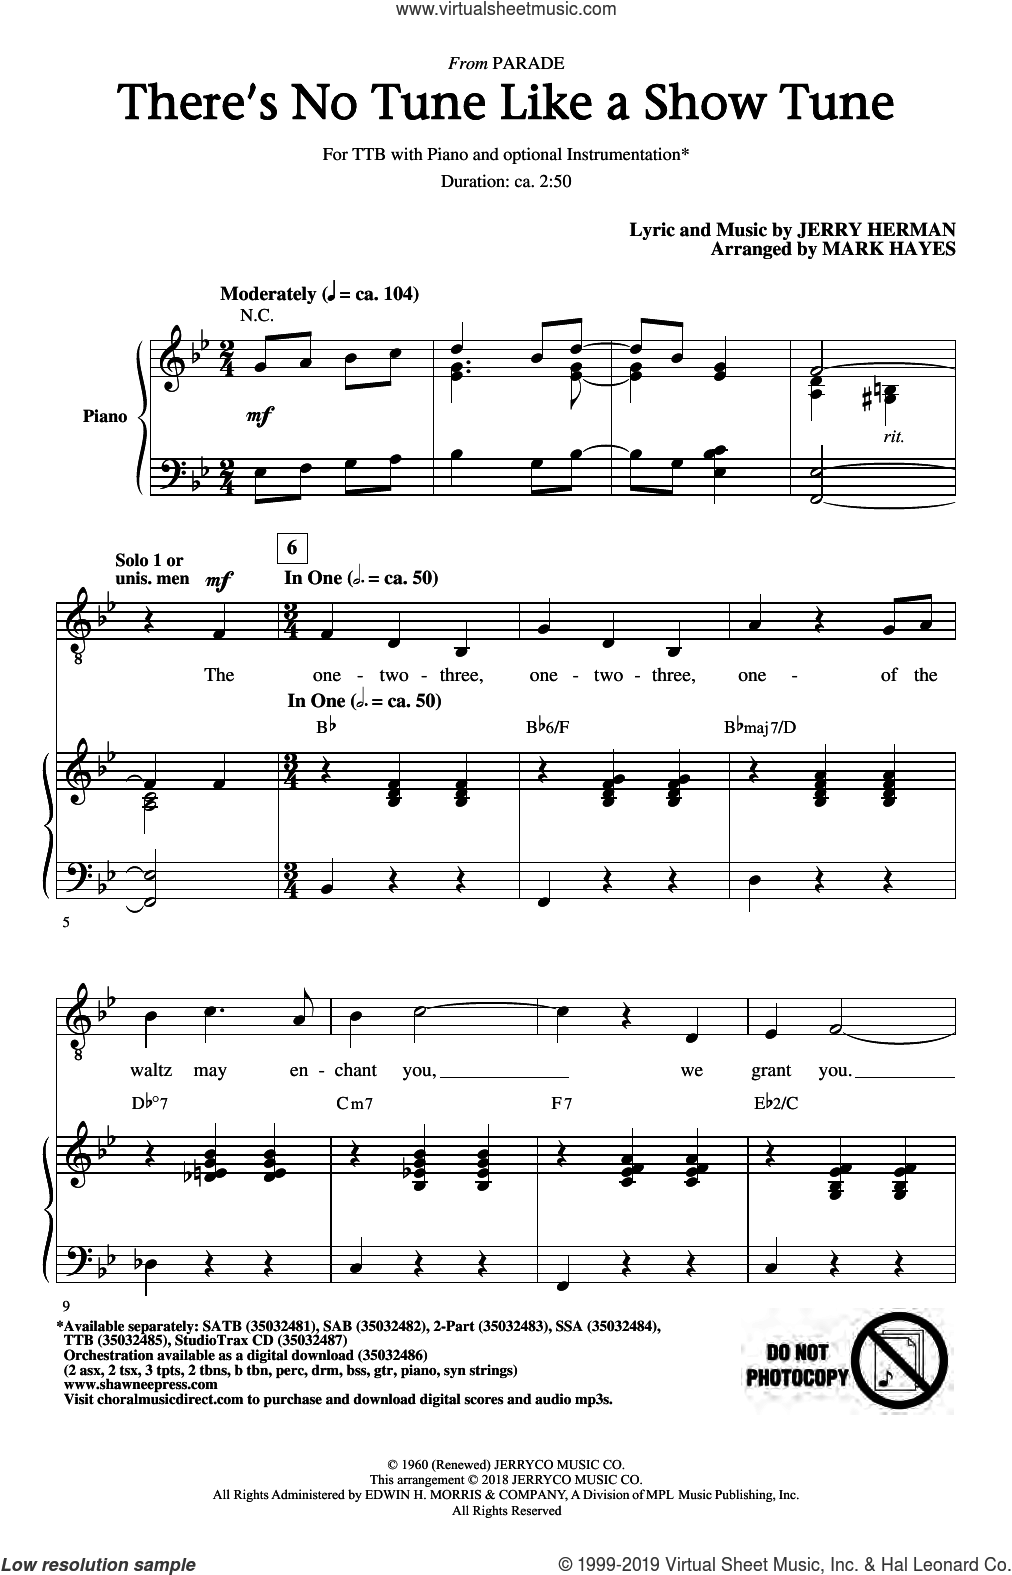 There's No Tune Like A Show Tune (arr. Mark Hayes) sheet music for choir (TTBB: tenor, bass) by Jerry Herman and Mark Hayes, intermediate skill level